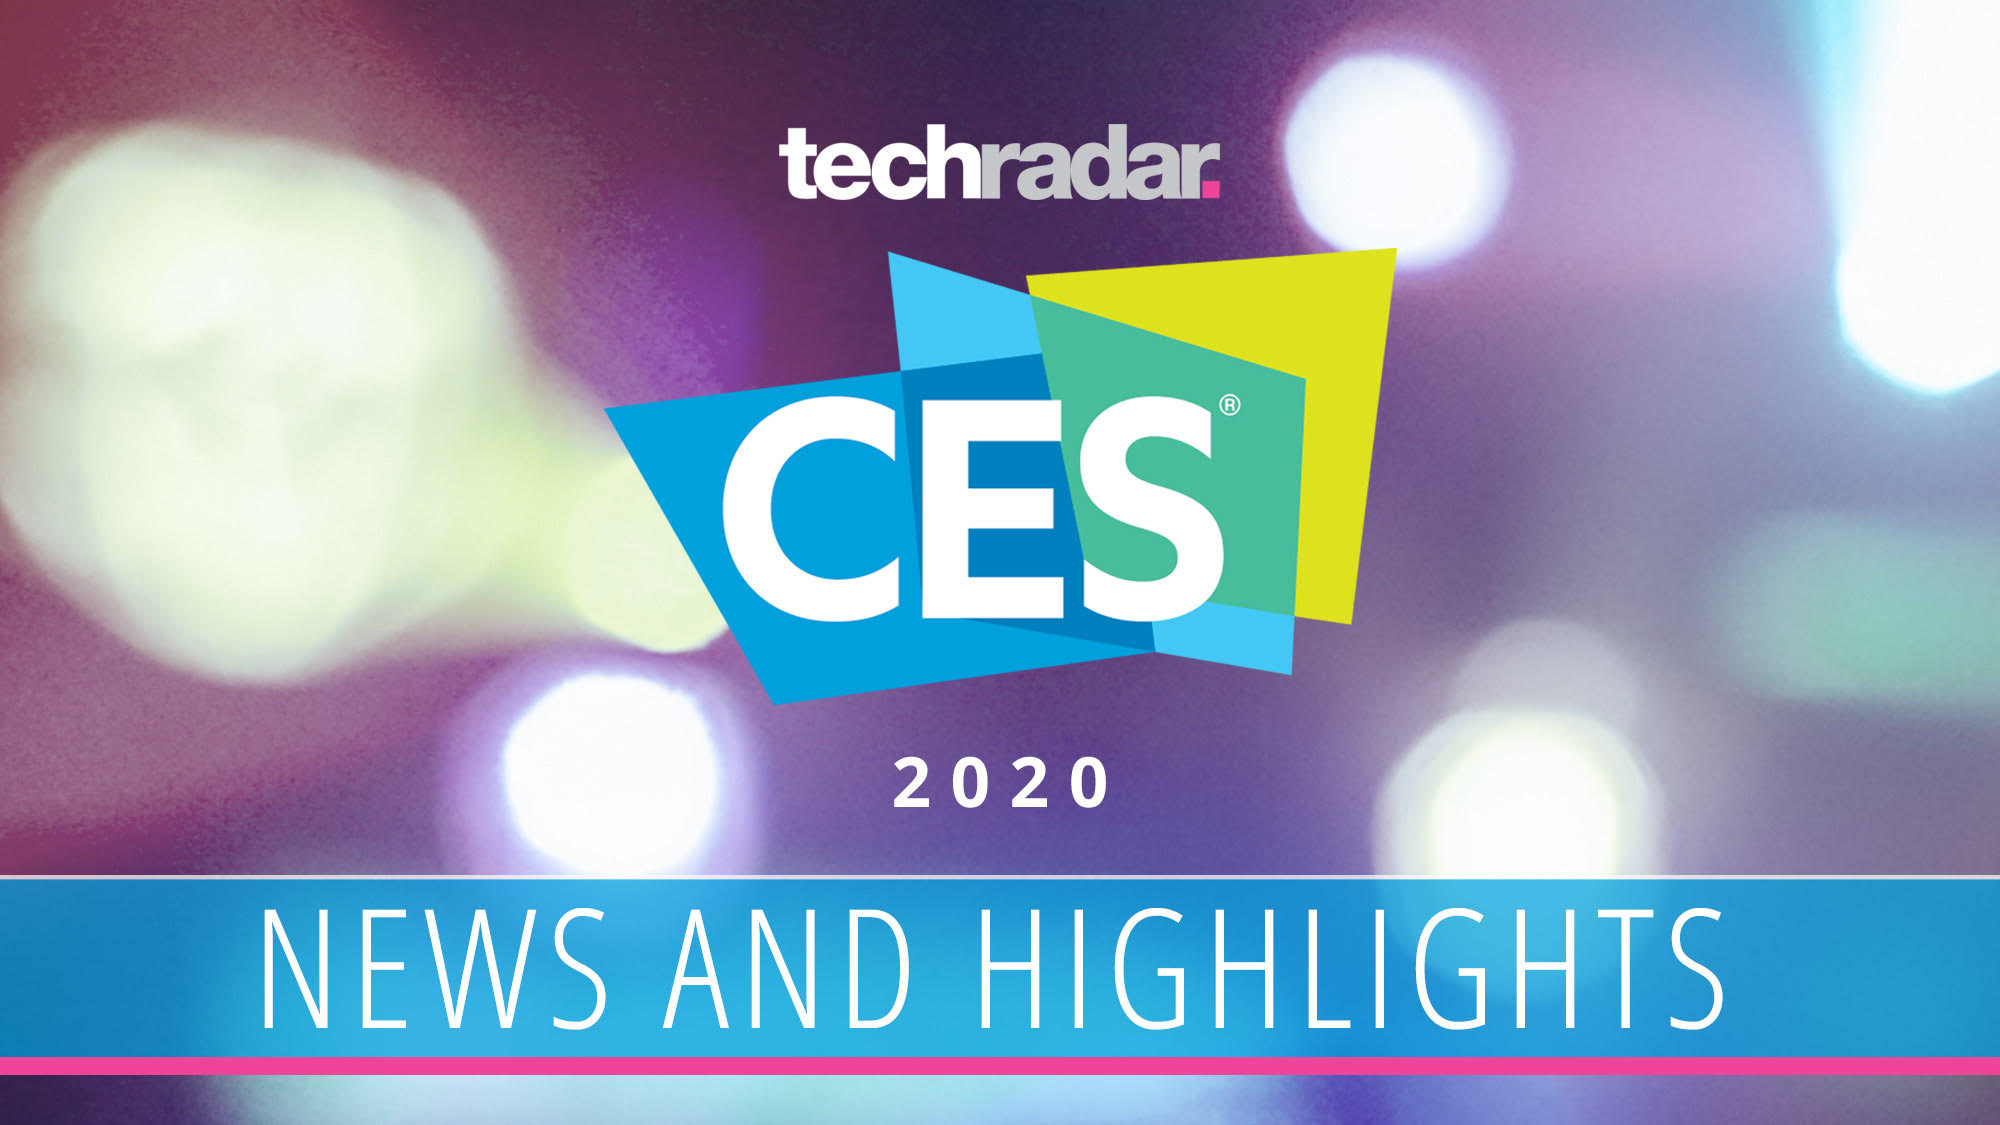 CES 2020: highlights, video and news of the hottest new tech